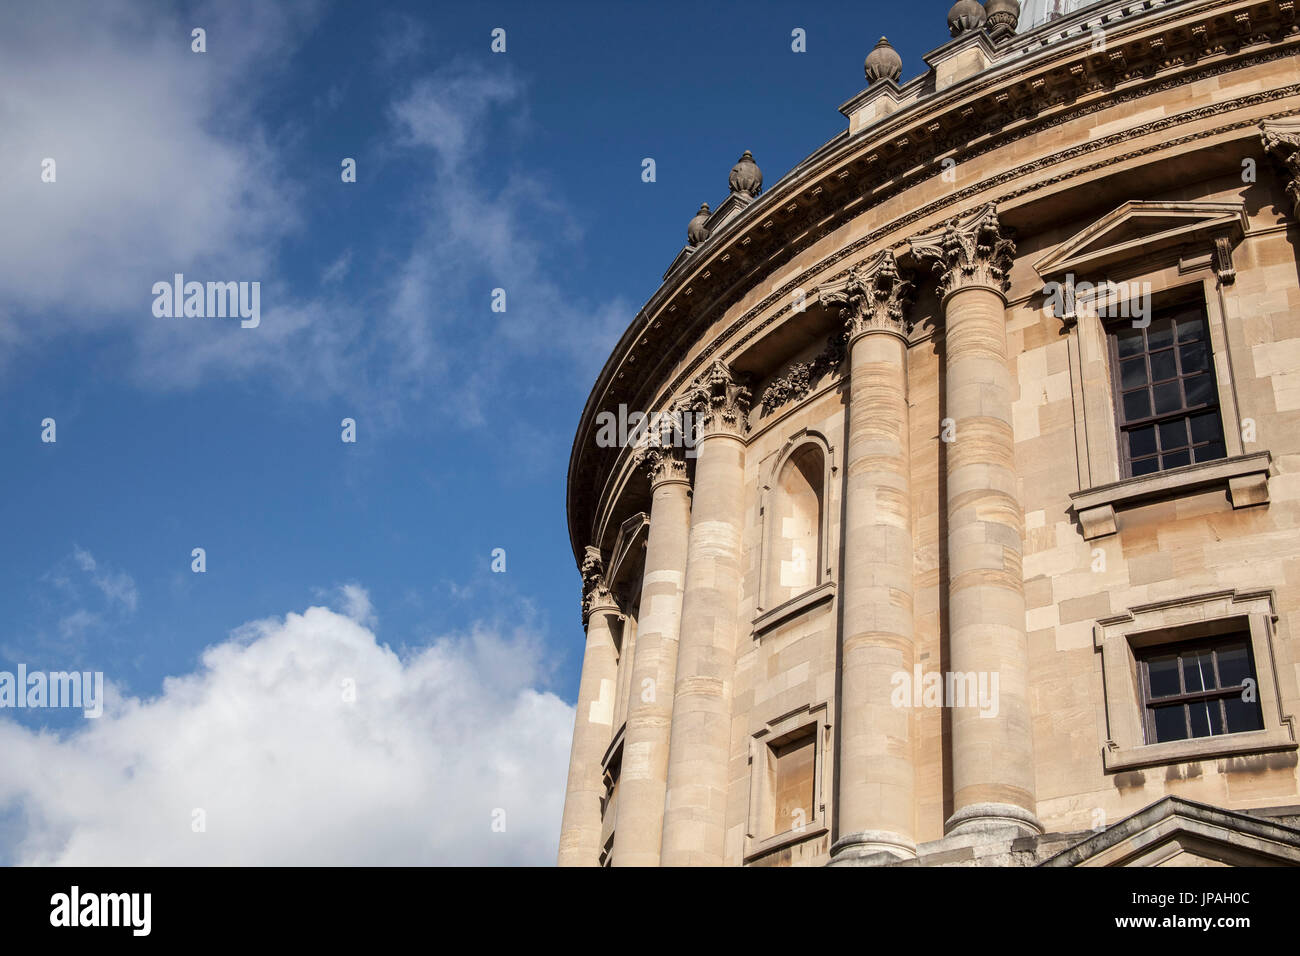 Radcliffe Camera, part of the Bodleian Library, university, Oxford, Oxfordshire, England, Great Britain - Stock Image